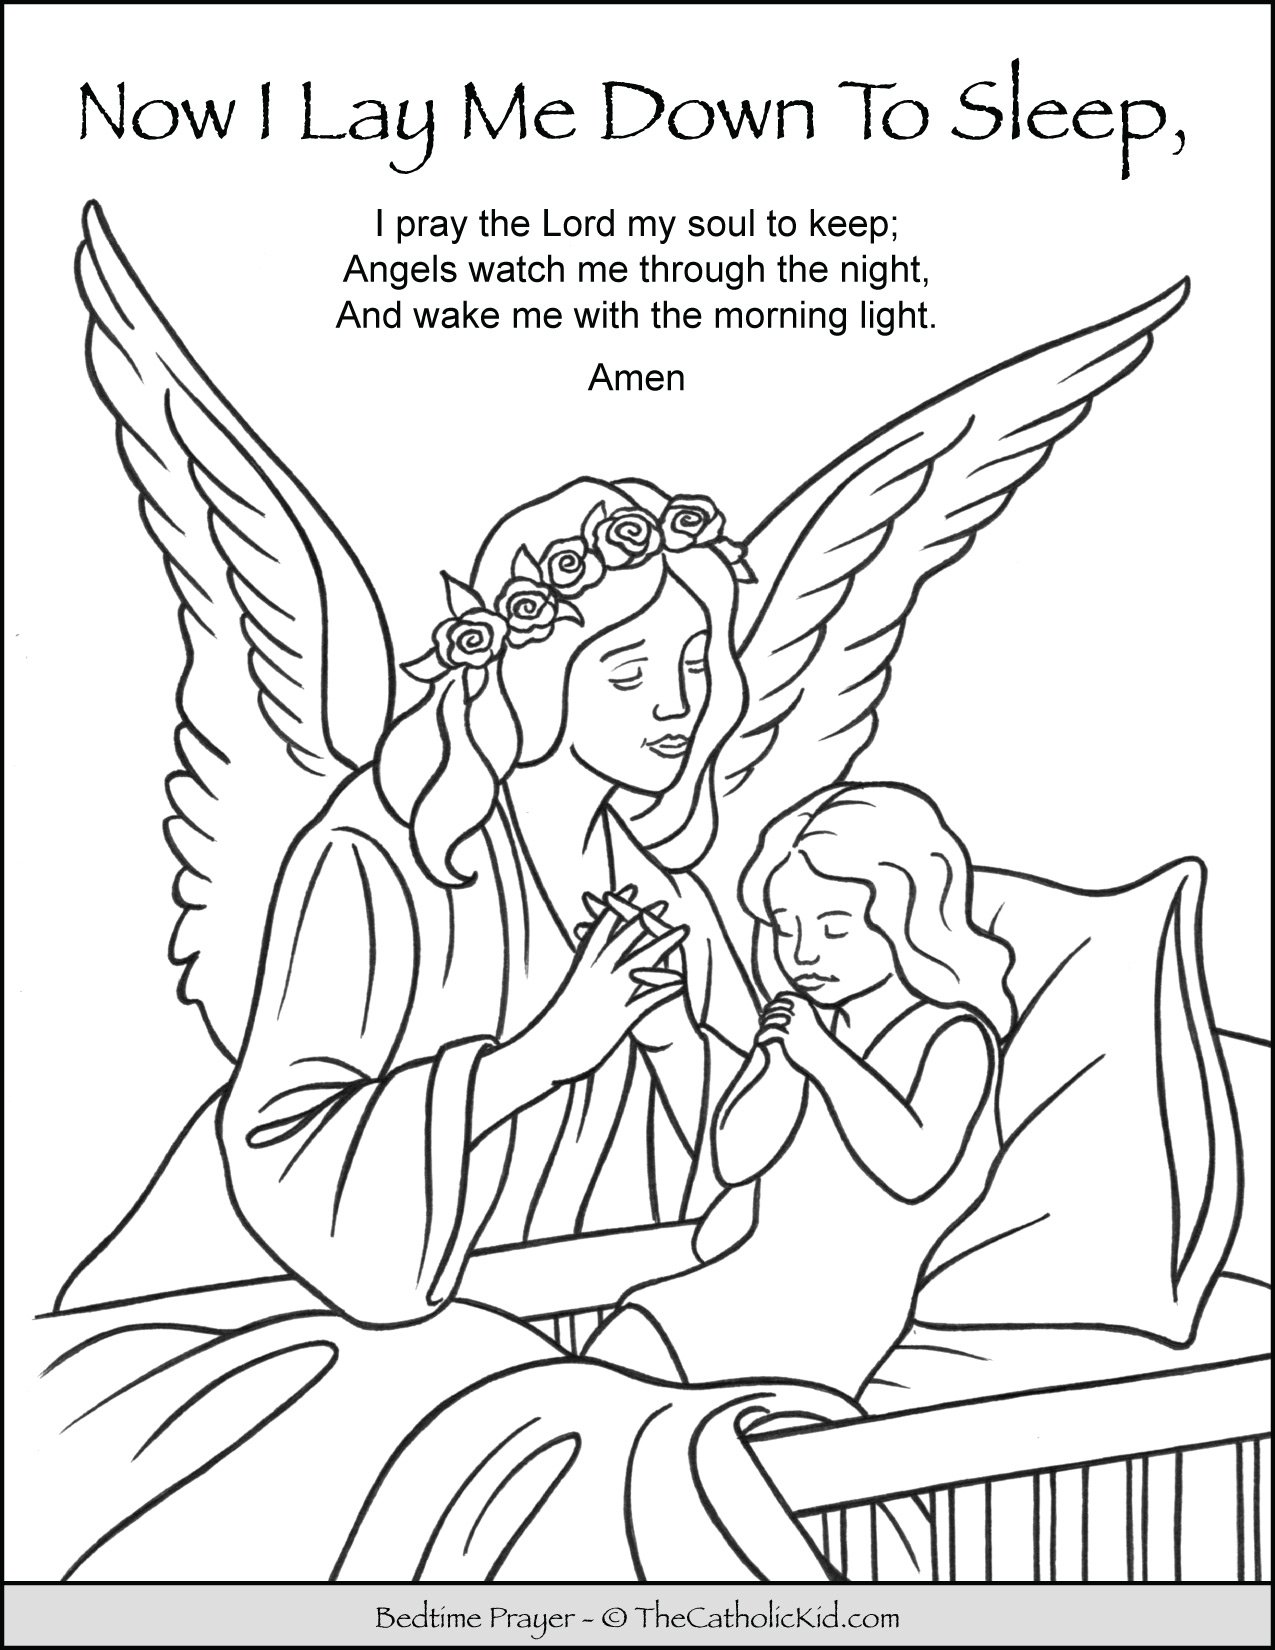 Now I Lay Me Down To Sleep Child Bedtime Prayer Coloring Page